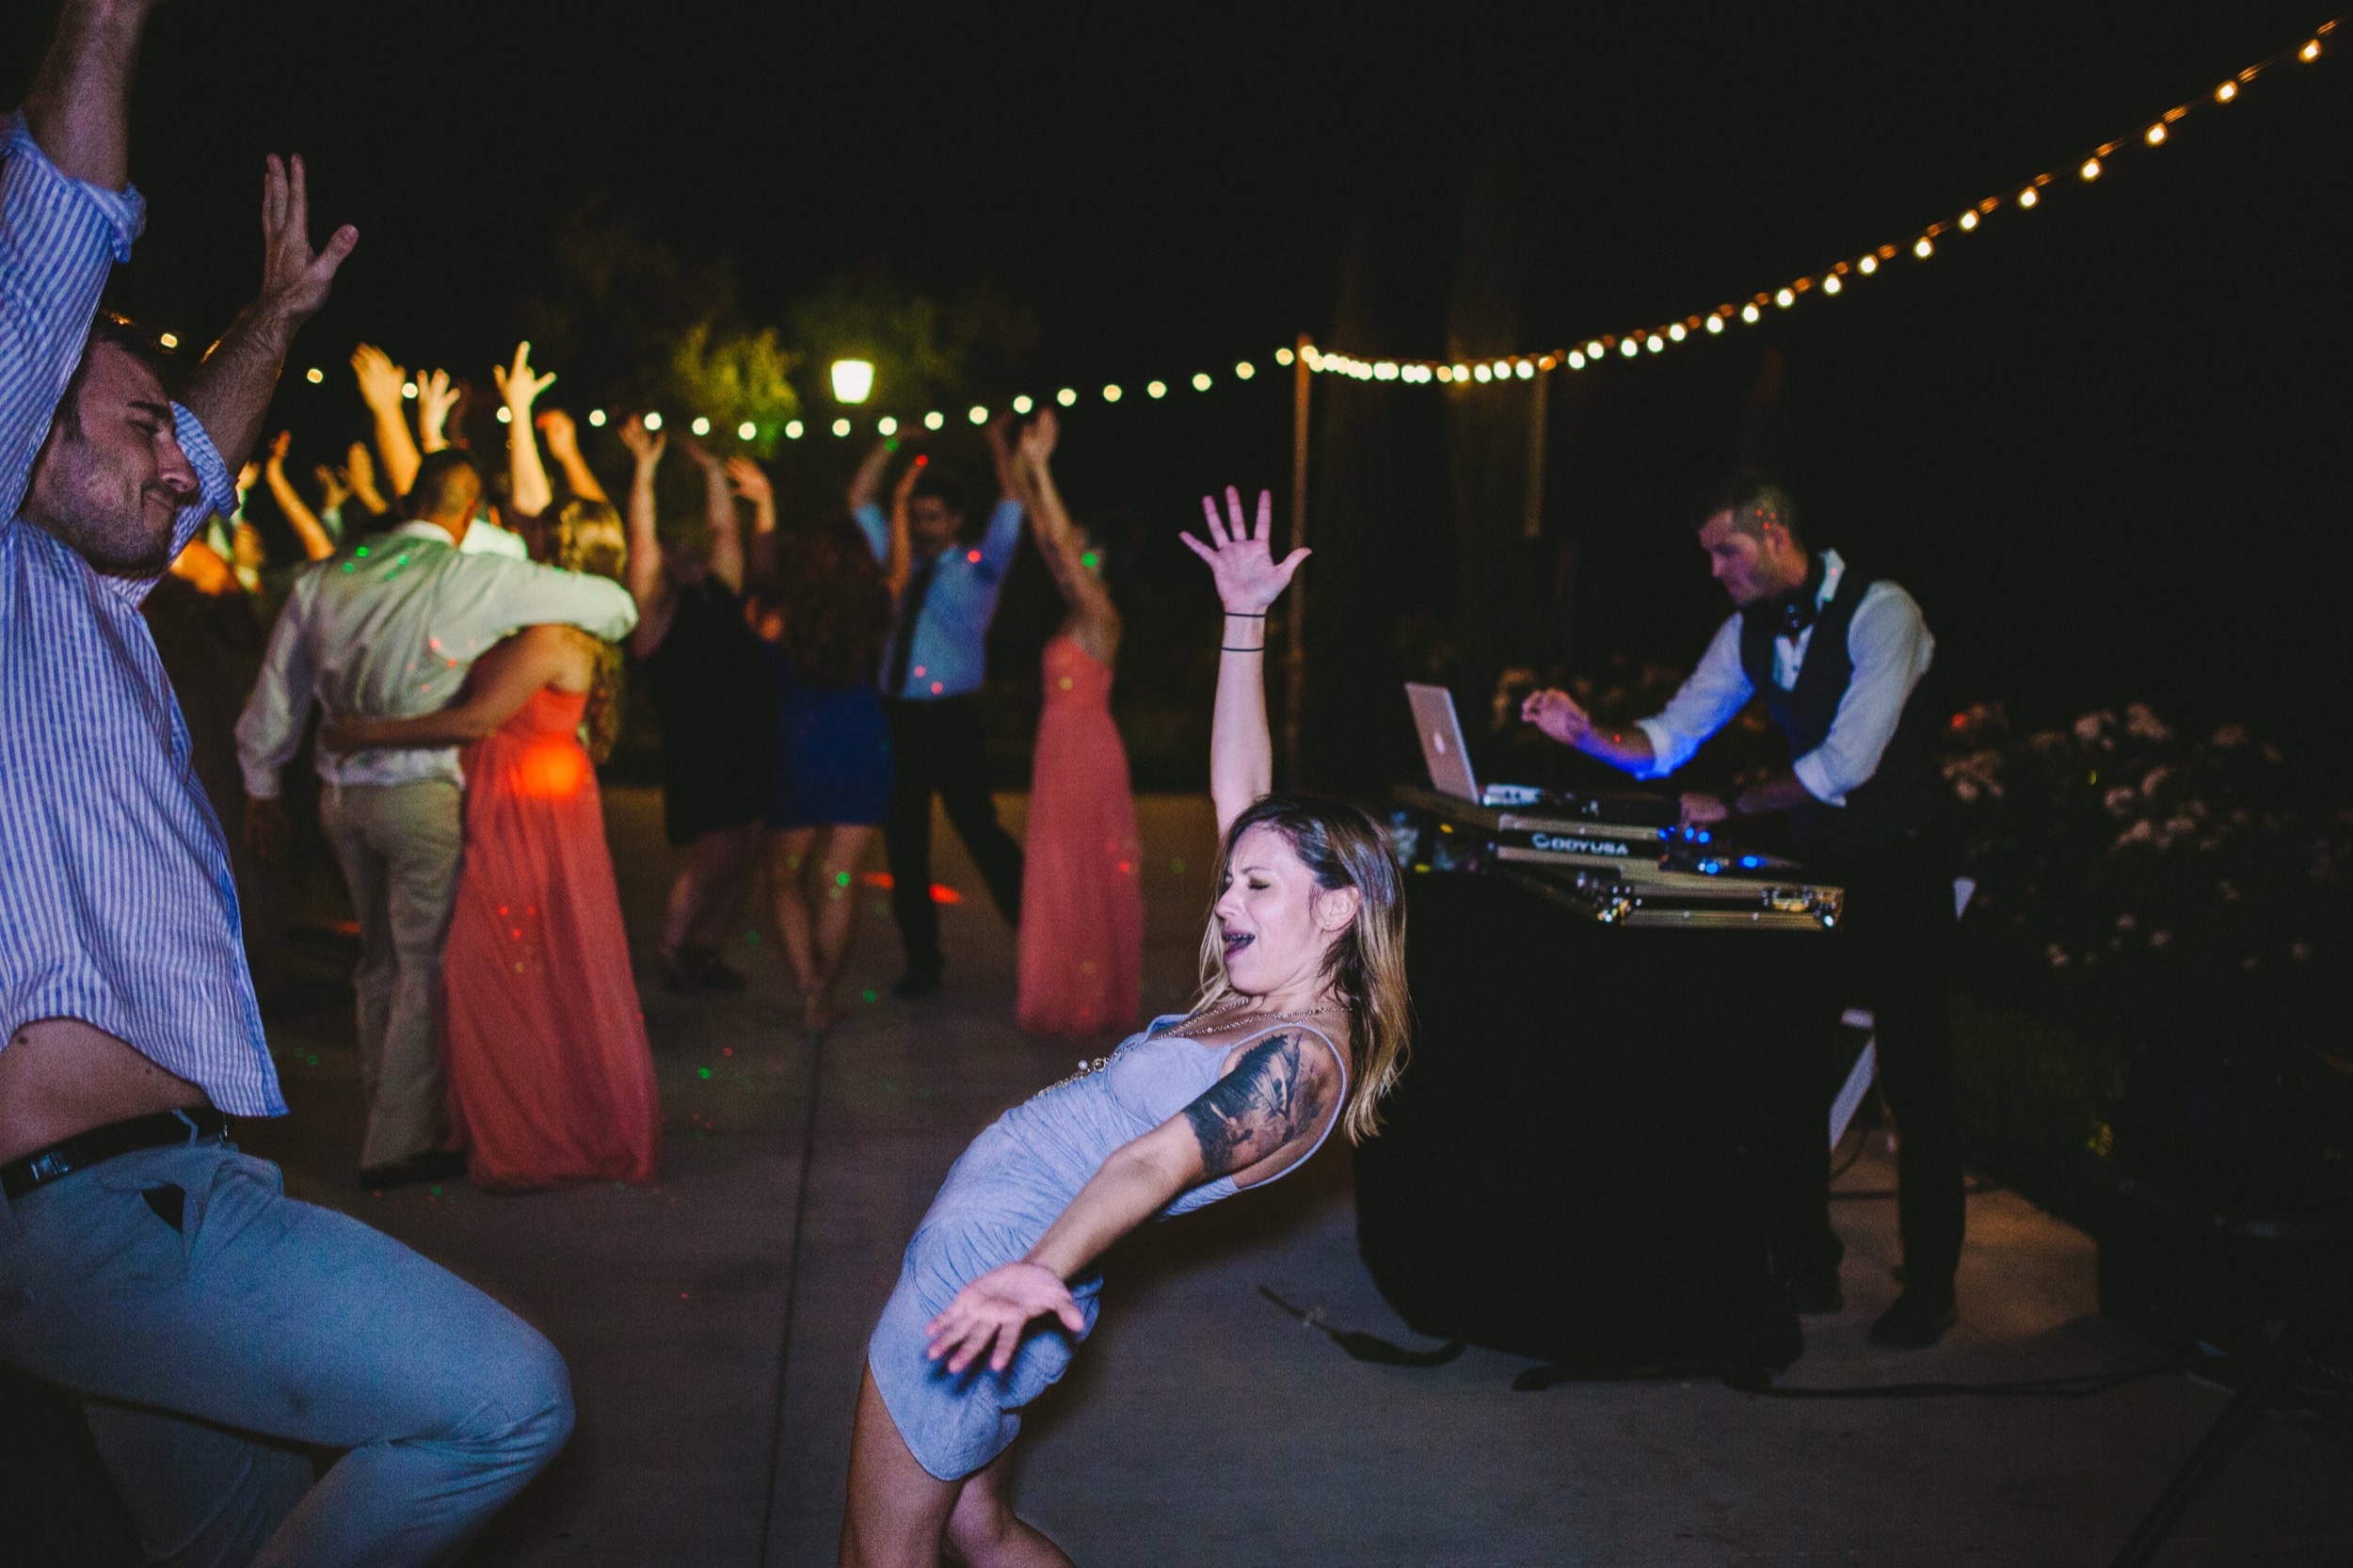 Wedding Guests Dancing at Toca Madera Winery Wedding Outdoor Reception